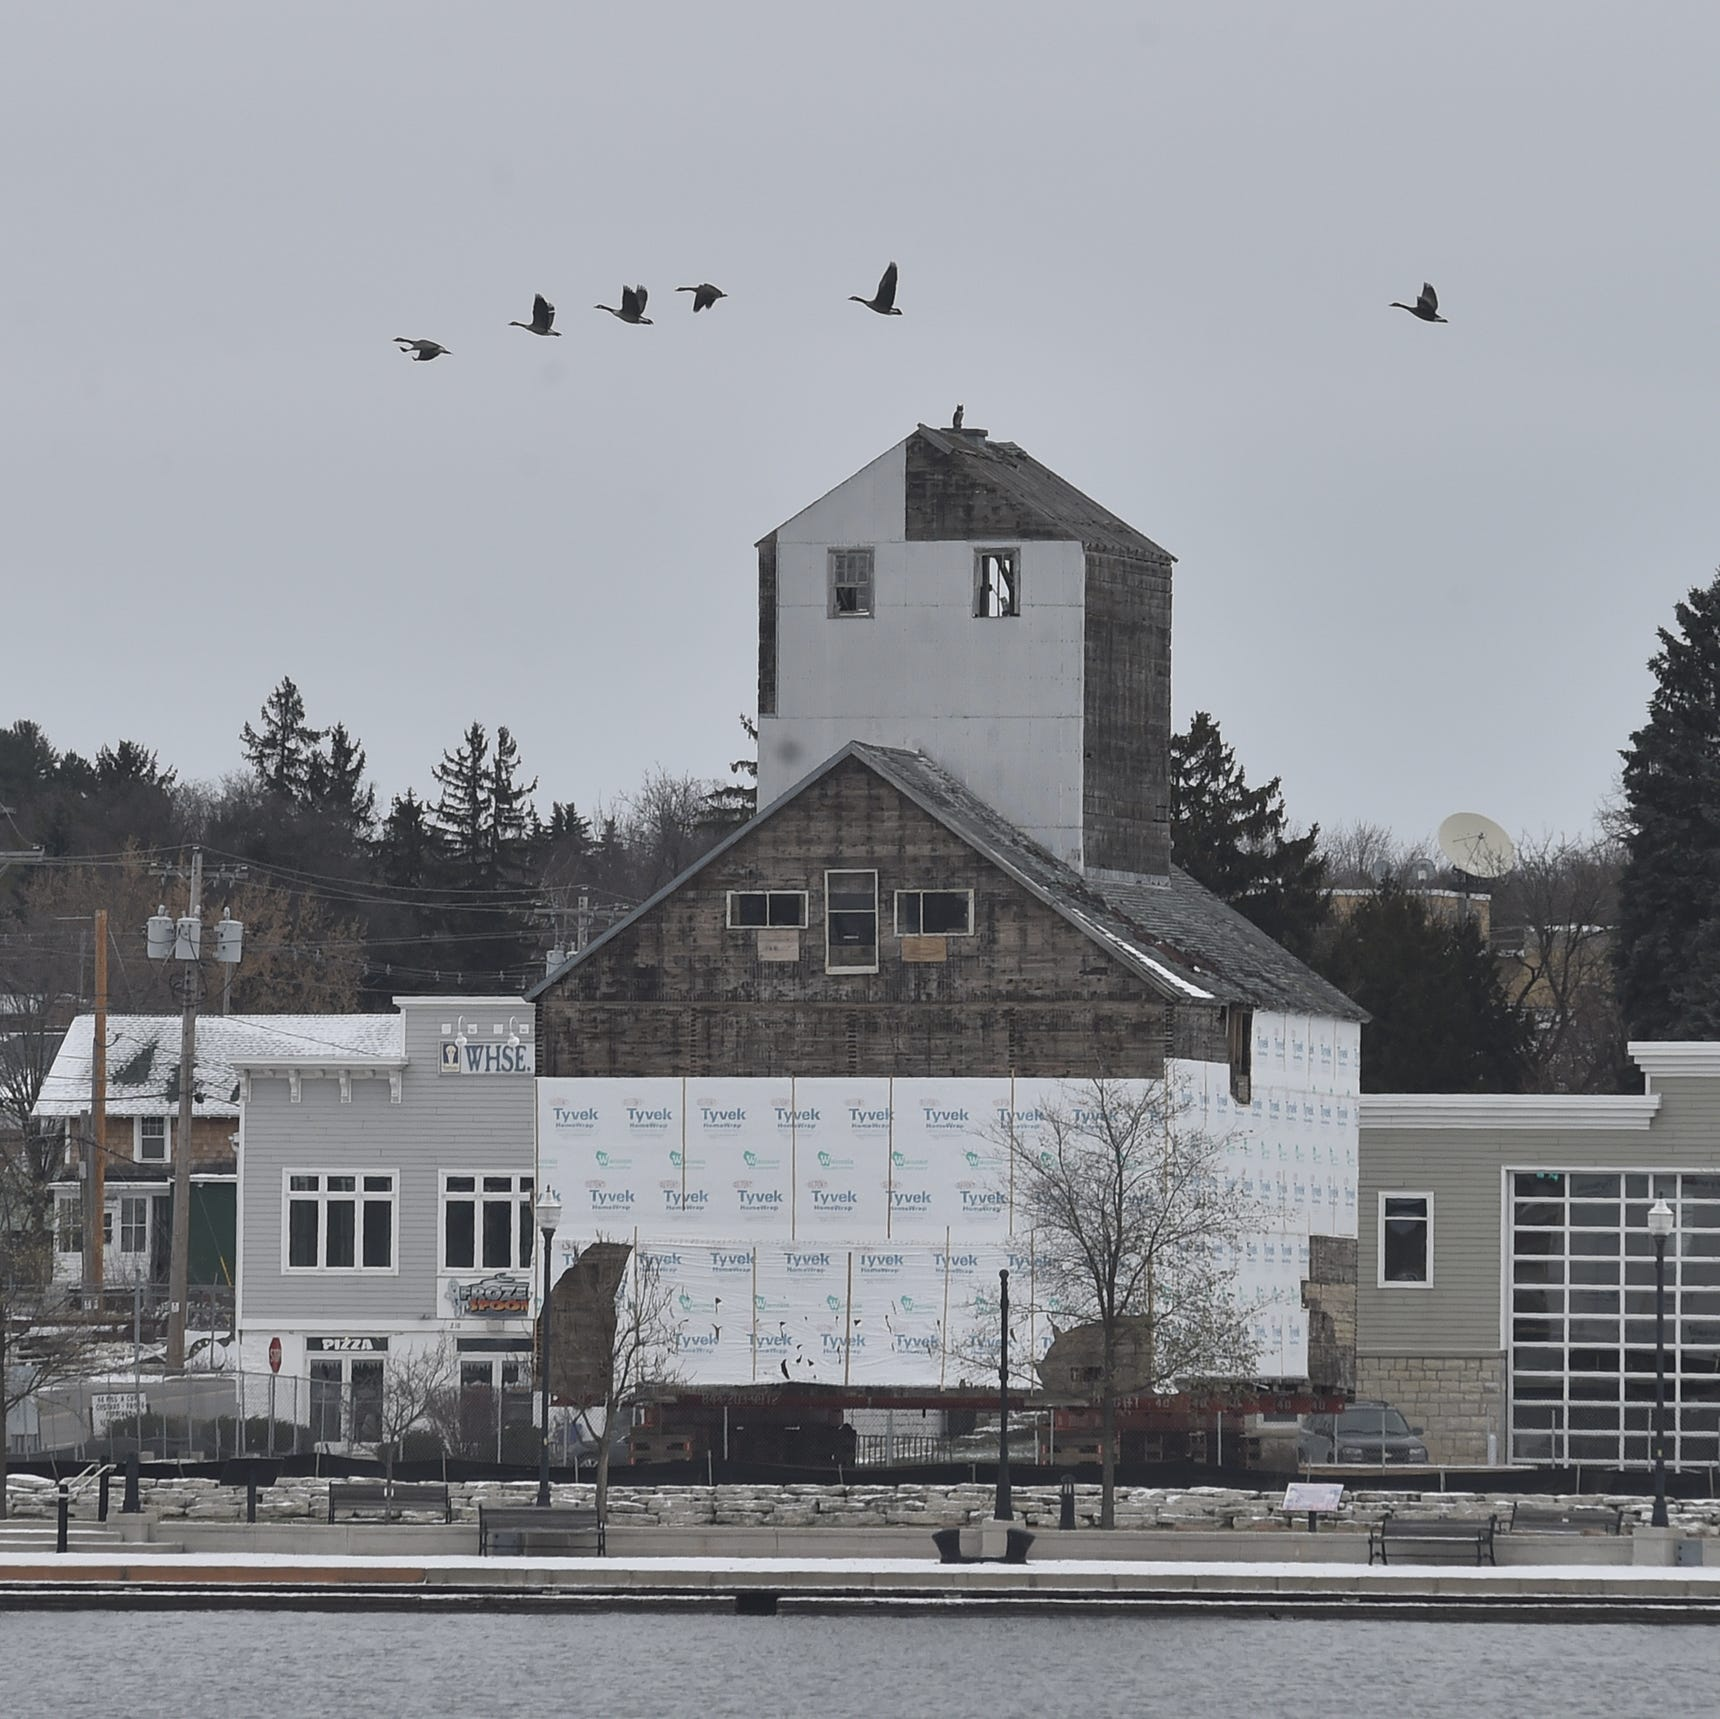 City Council nixes plan to move historic granary back to west side waterfront, for now